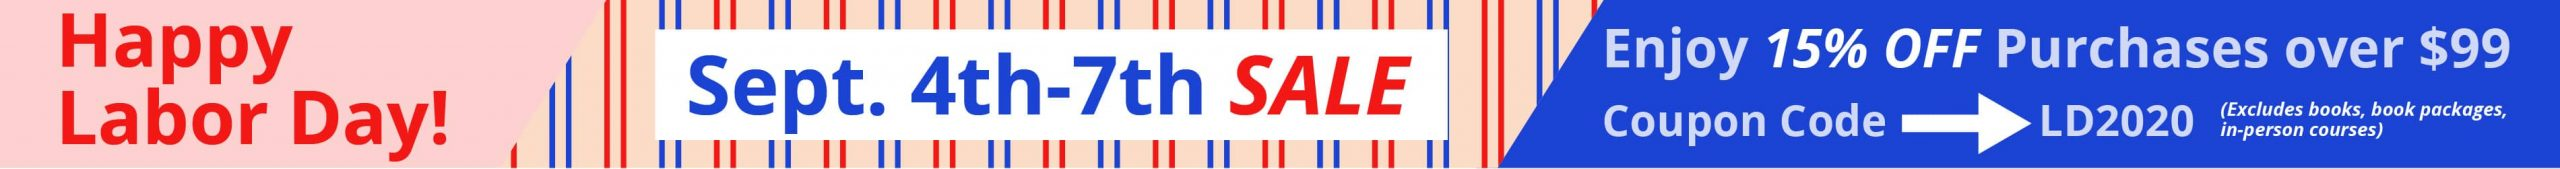 Labor Day Sale: September 4th-7th; 15% off purchases over $99